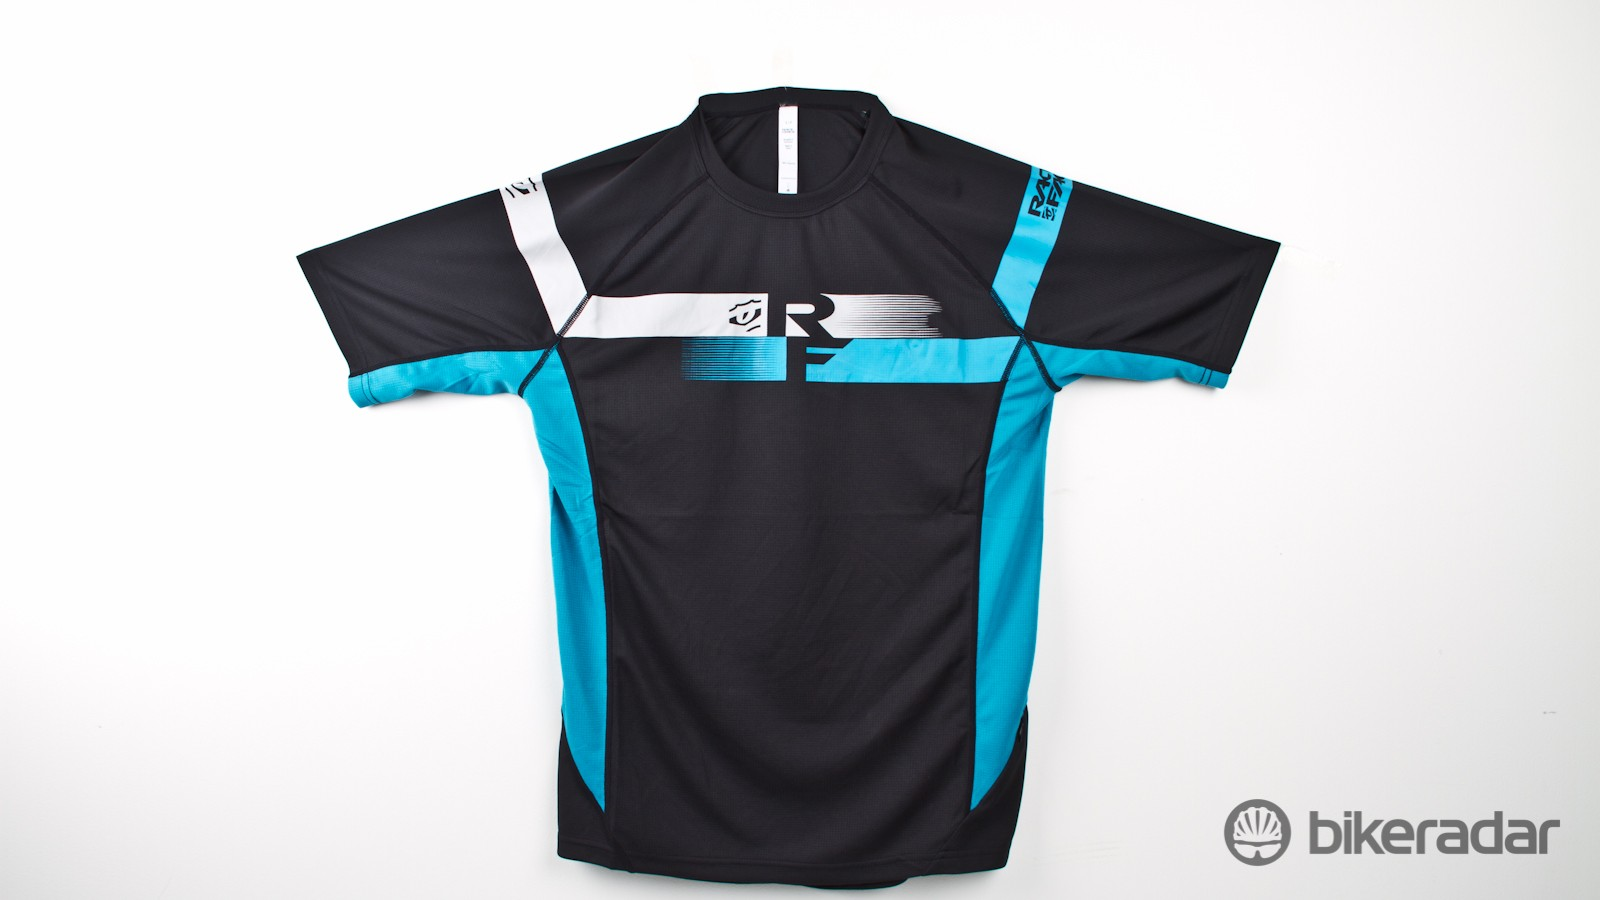 The Indy SS jersey offers a relaxed look but packs a full list of features for an all-day trail adventure